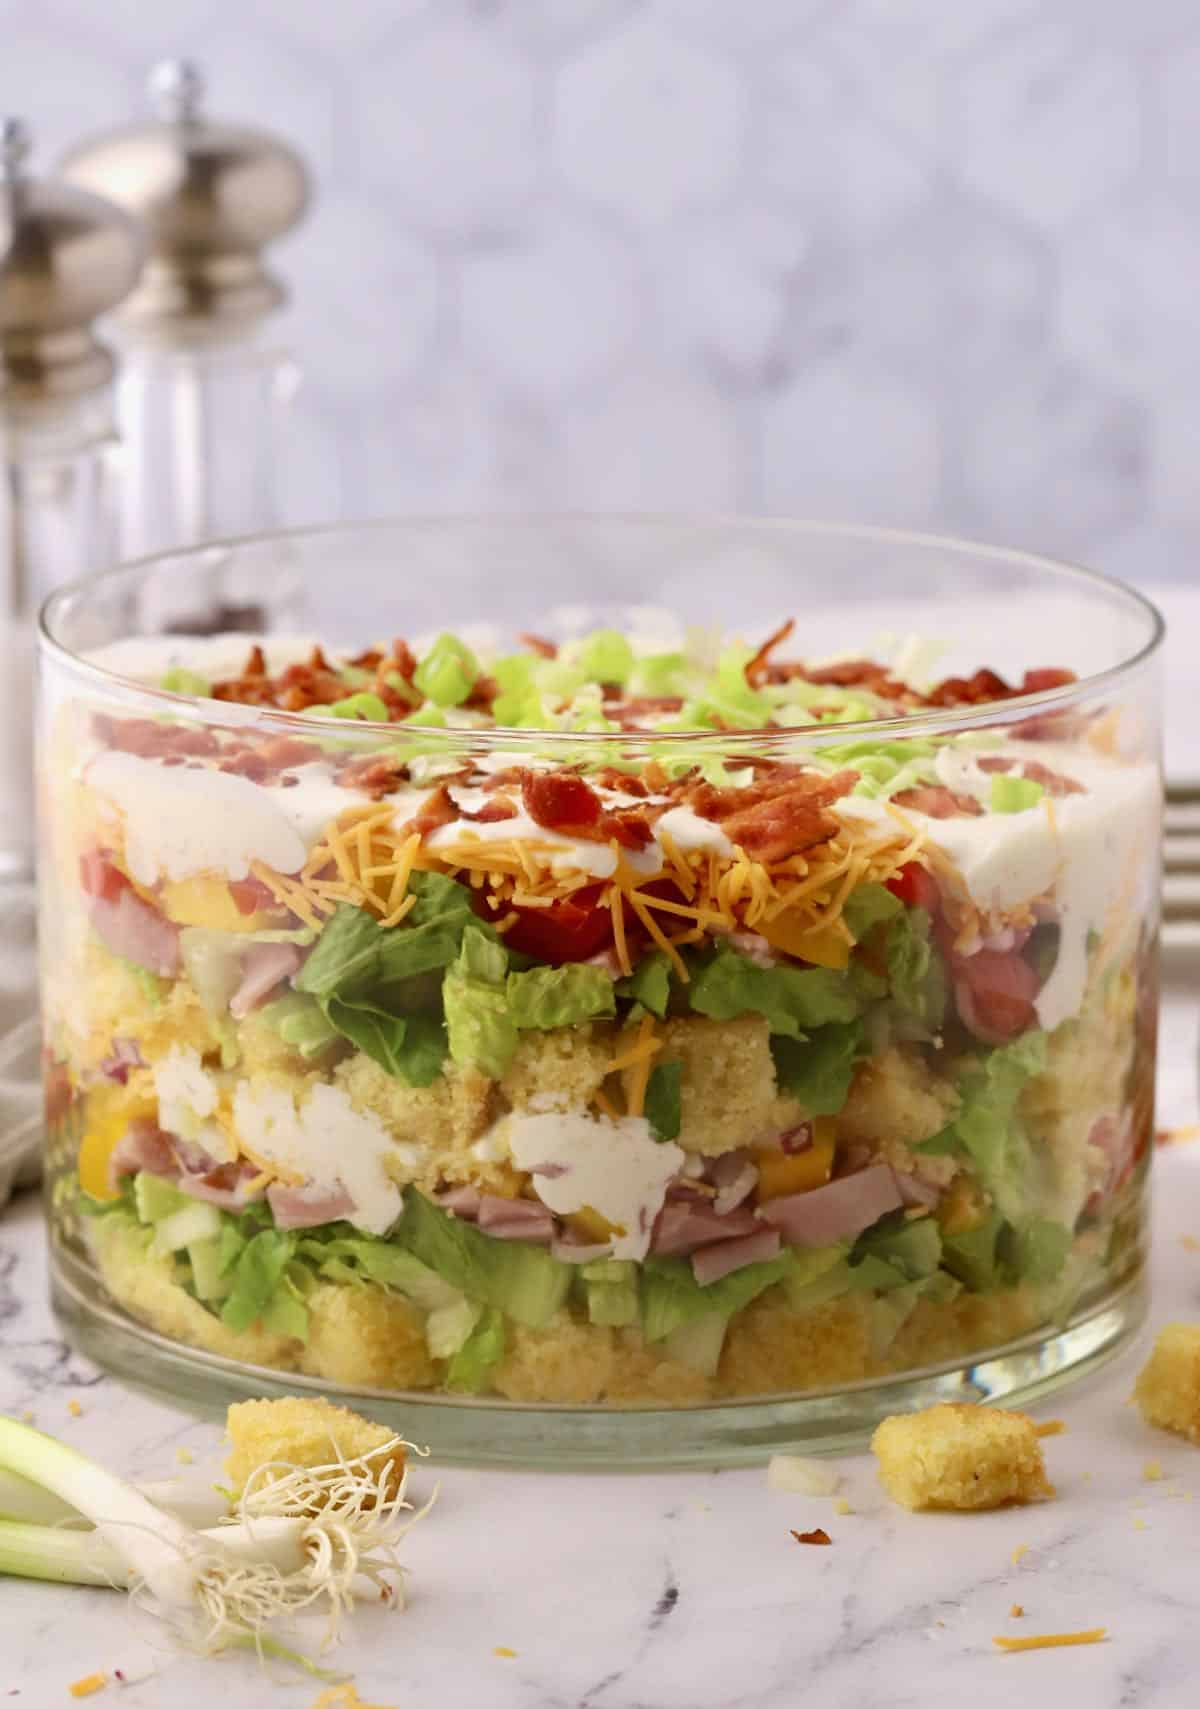 Cornbread salad with layers of vegetables and lettuce.